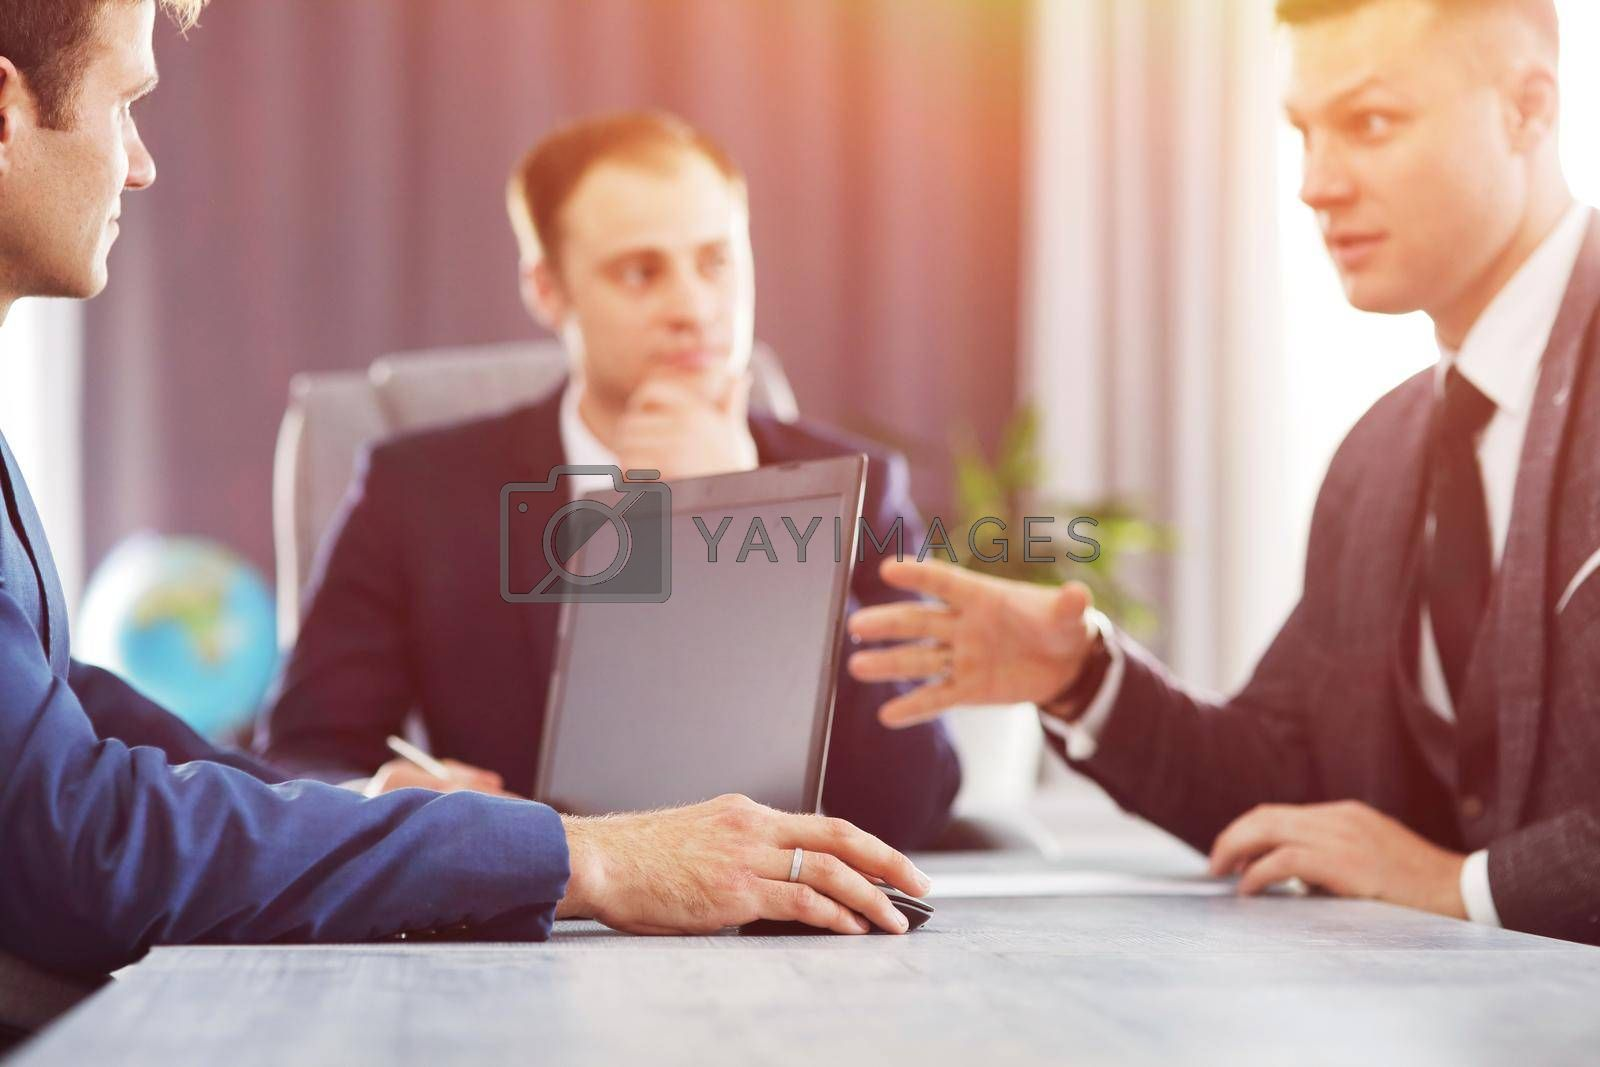 Royalty free image of Three of young business man meeting in the office discussing an important idea together by selinsmo